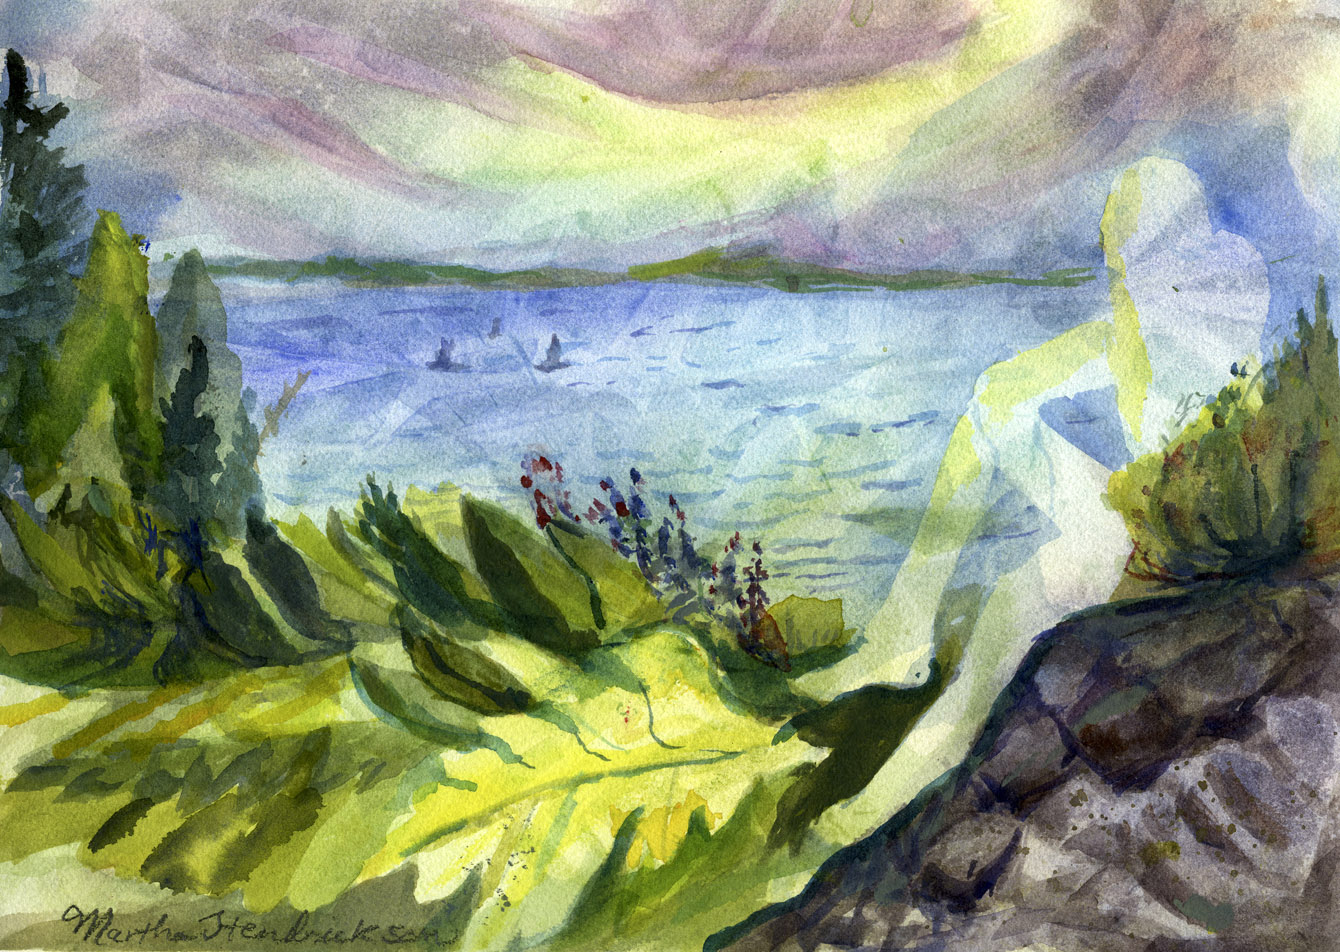 Watercolor of ferns rocks and lake and figure outline